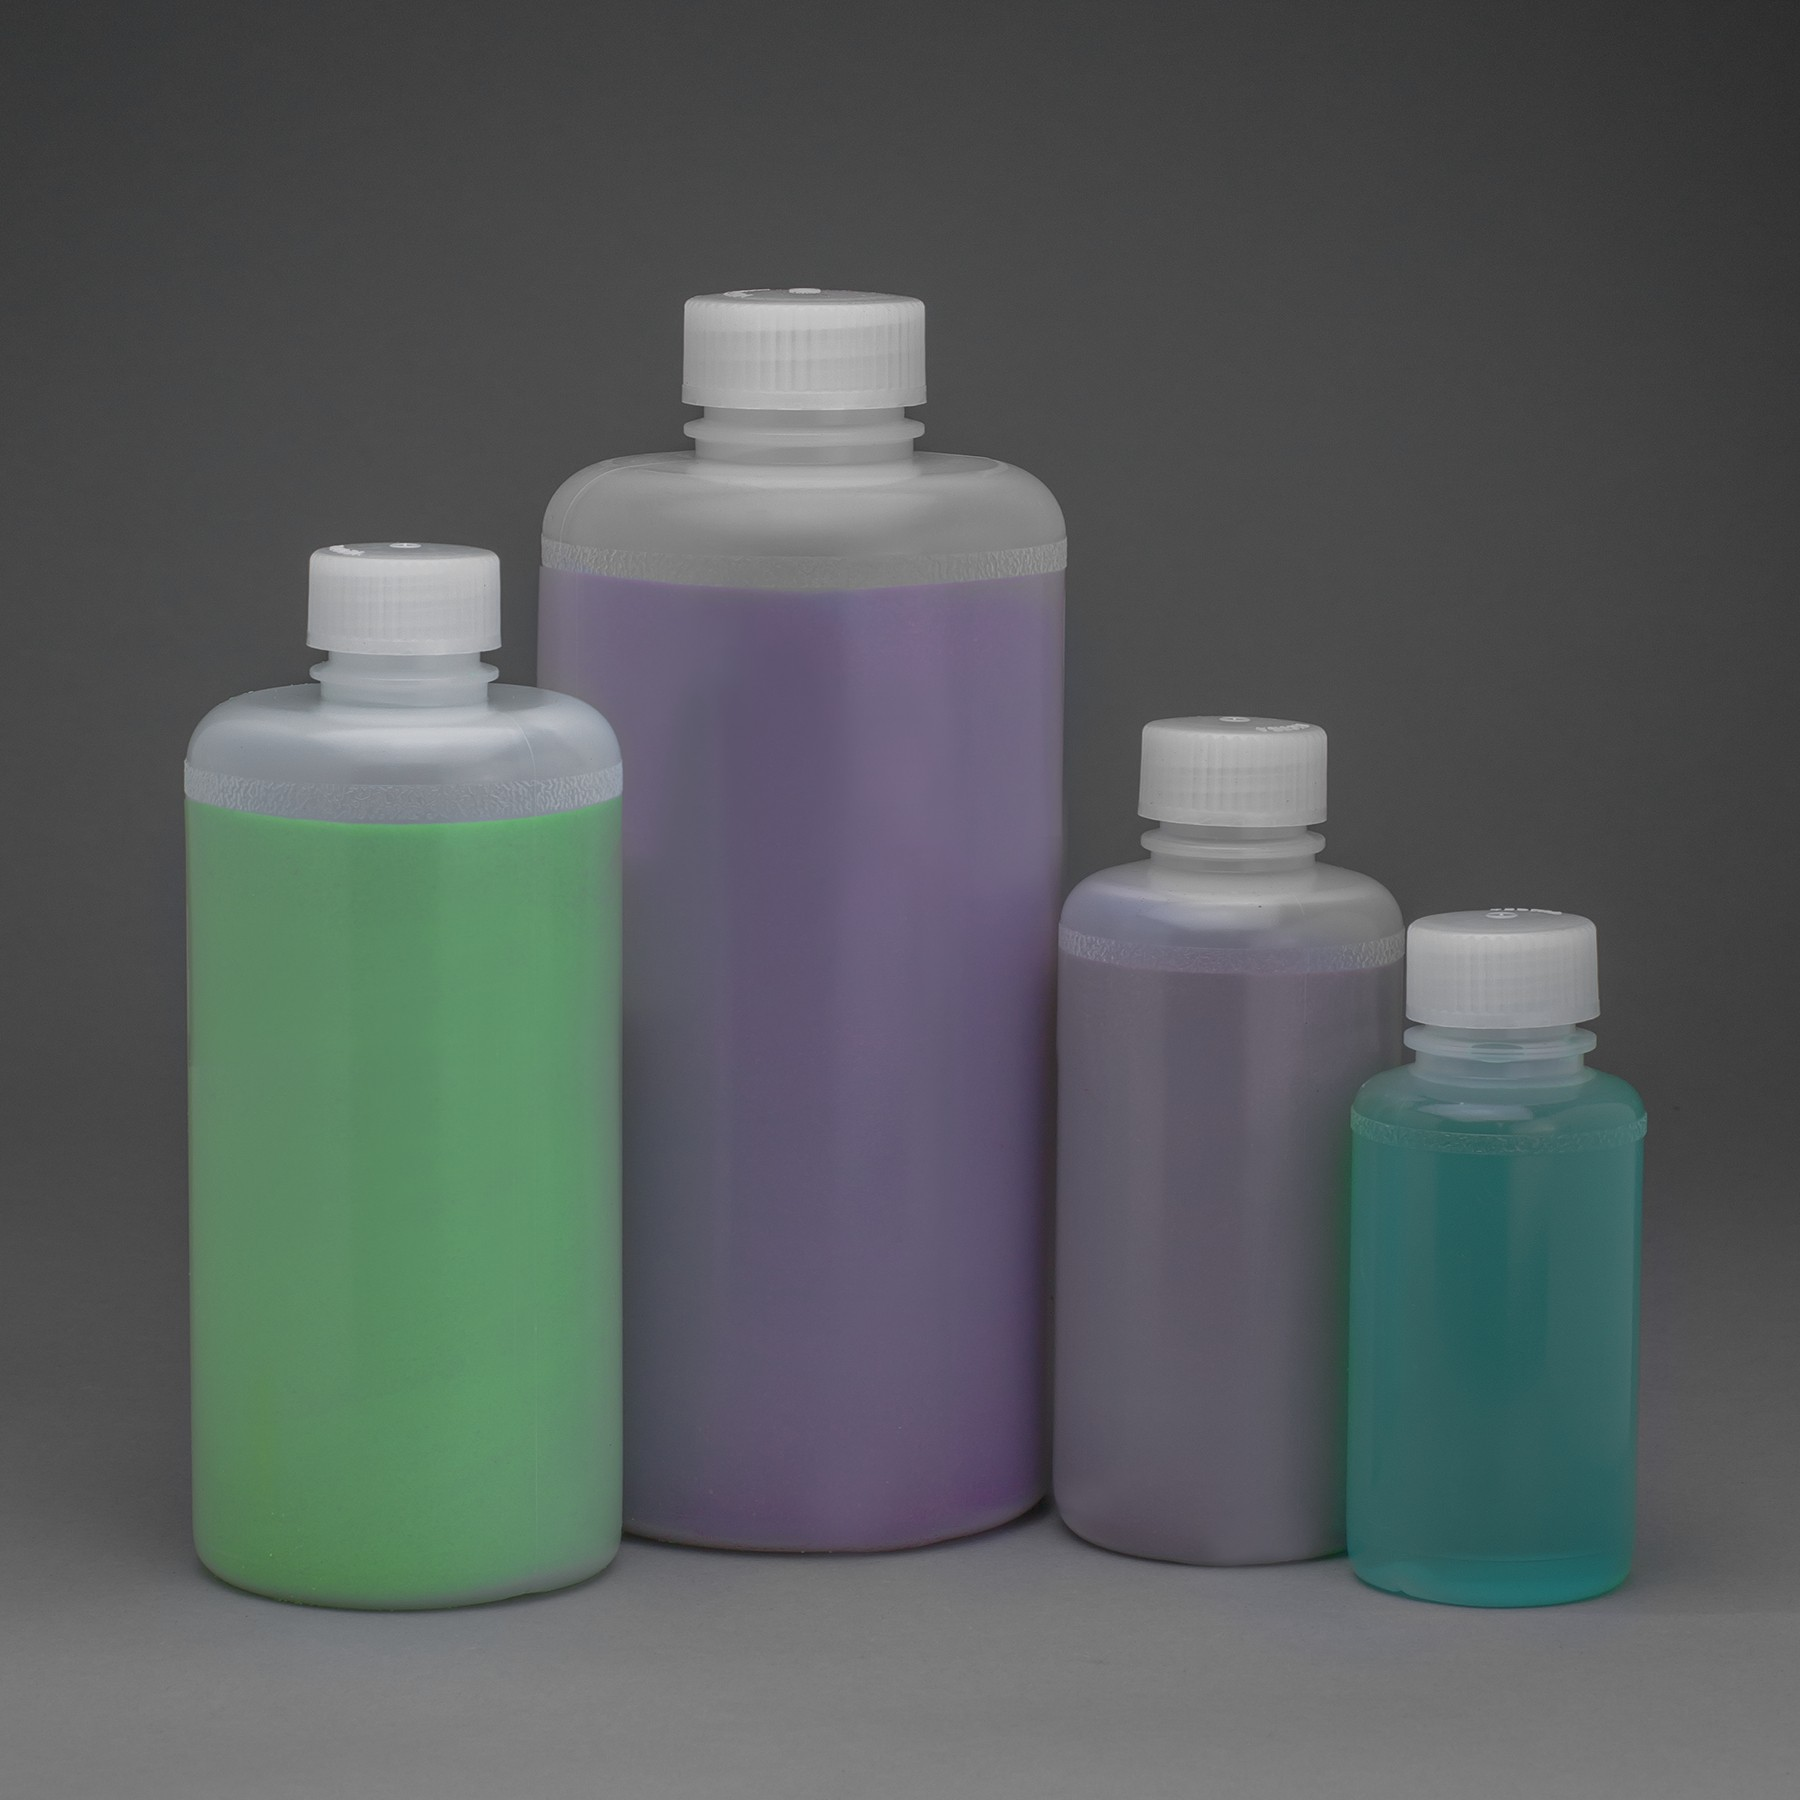 Precisionware Narrow-Mouth Bottles – Low-Density Polyethylene